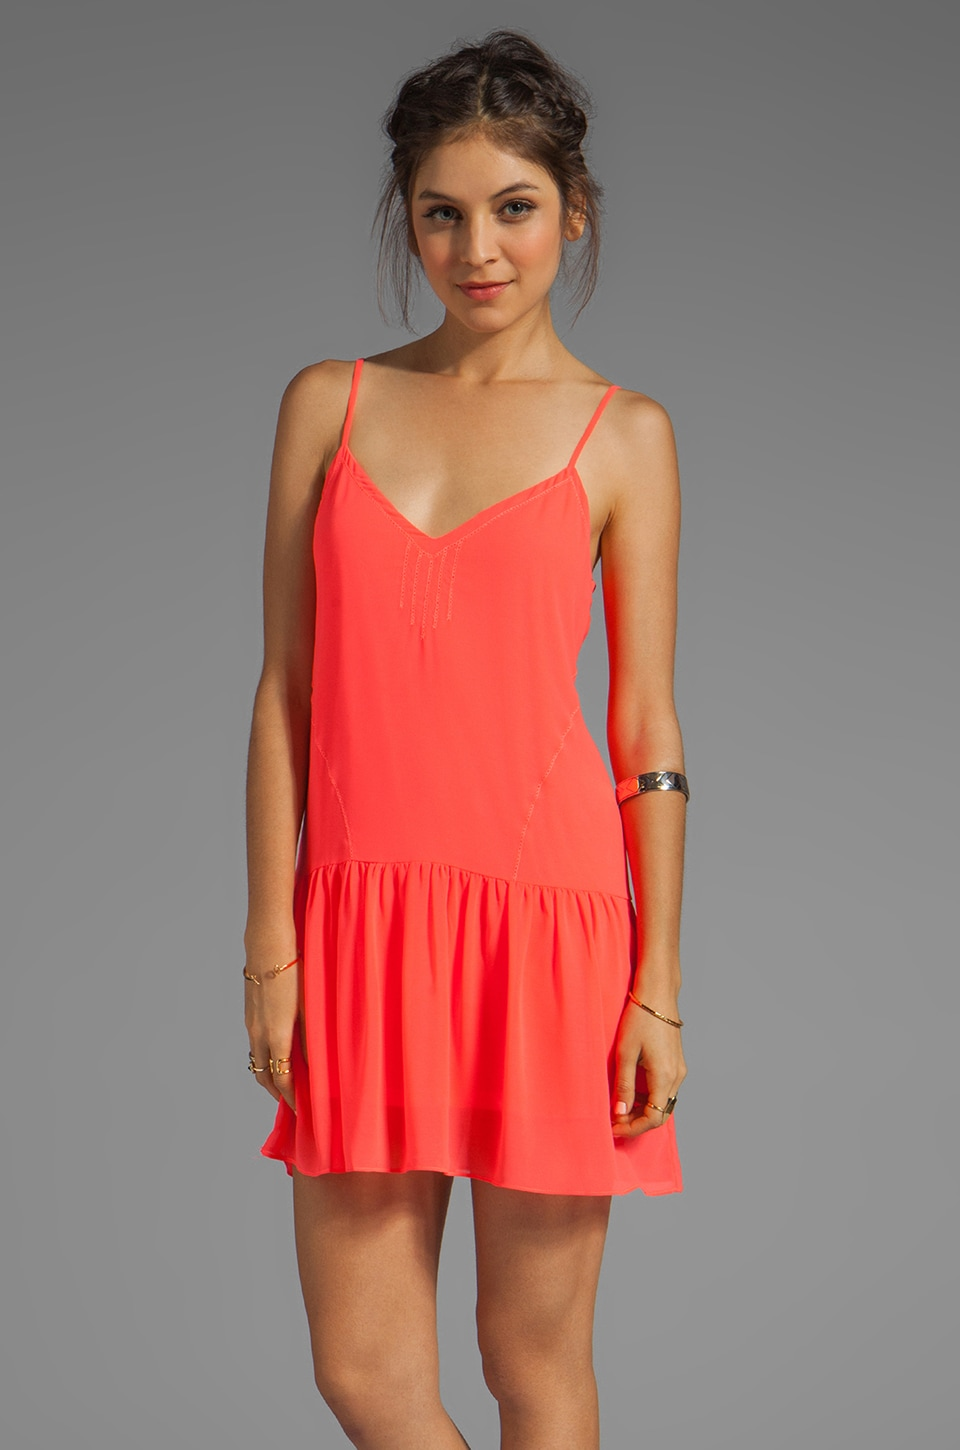 Dolce Vita Tinsel Beach Bali Mini Dress in Hot Coral